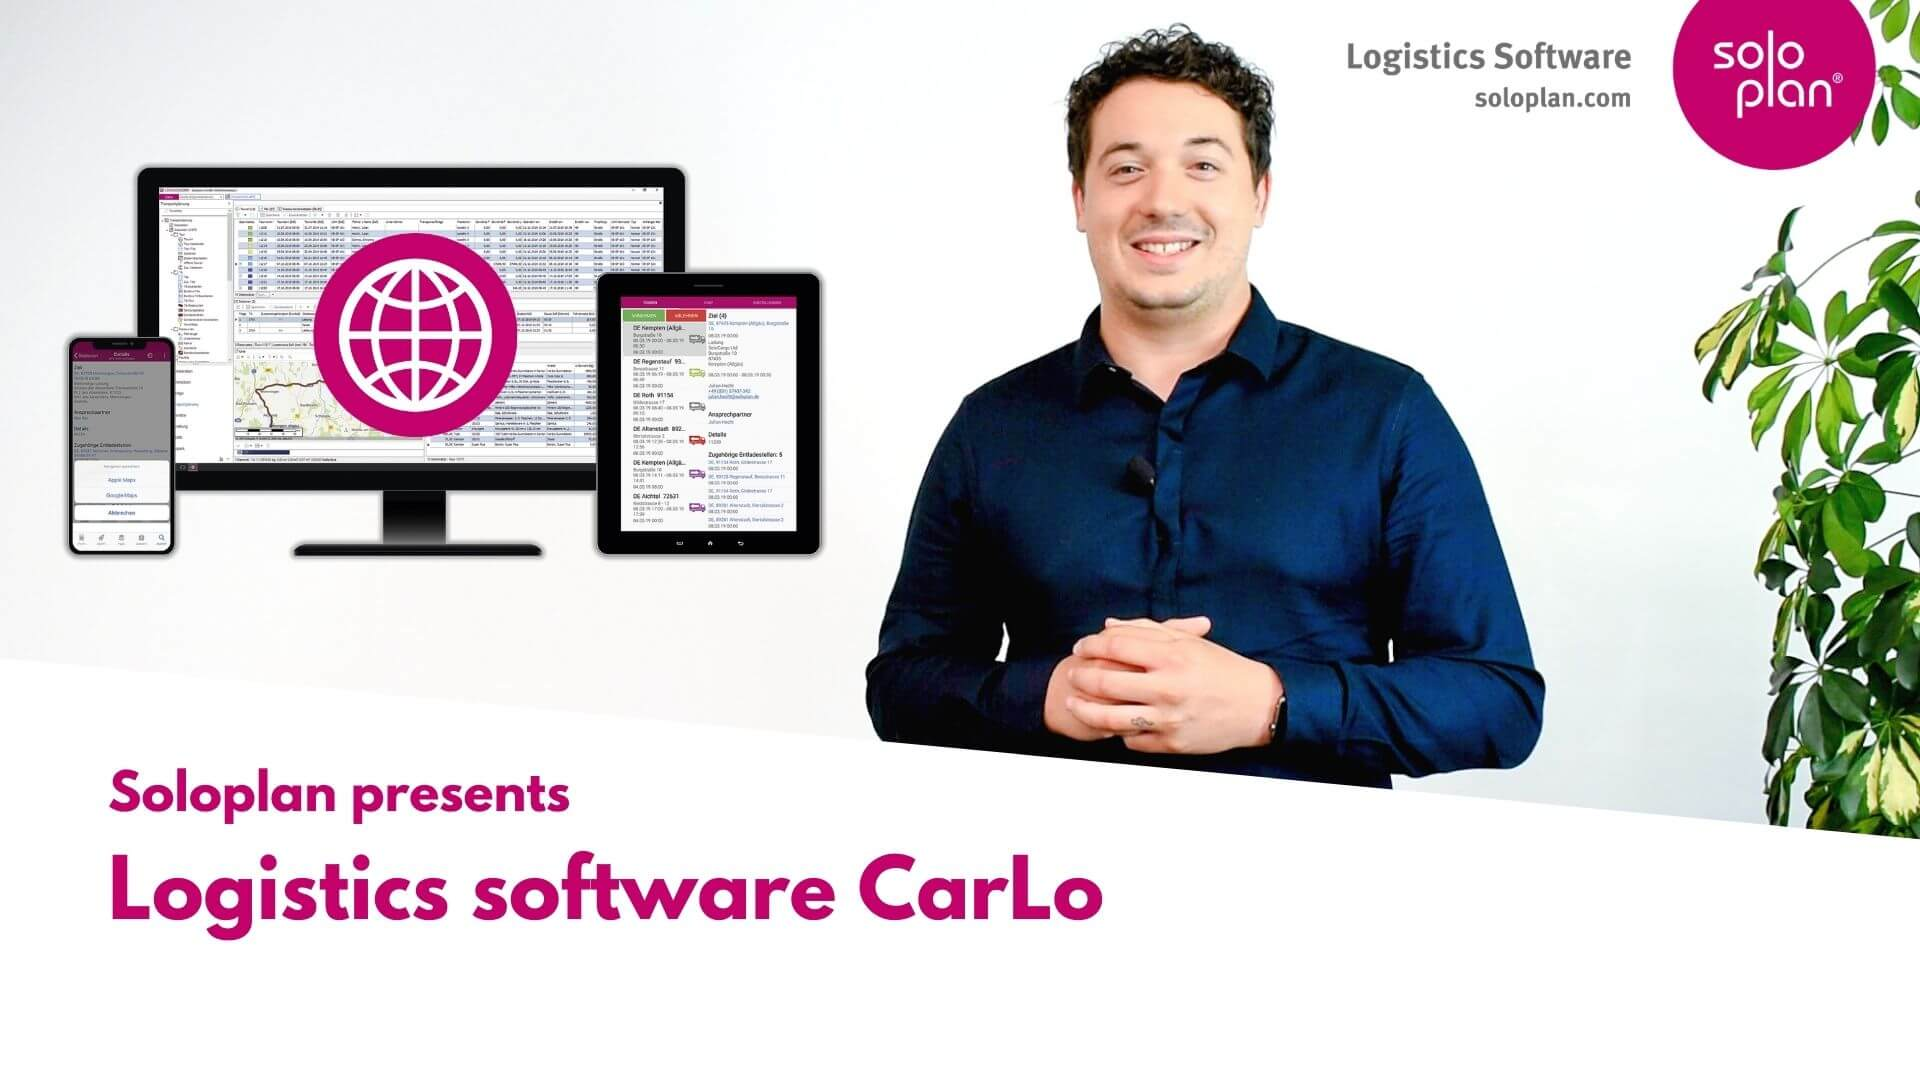 Transportmanagement system CarLo